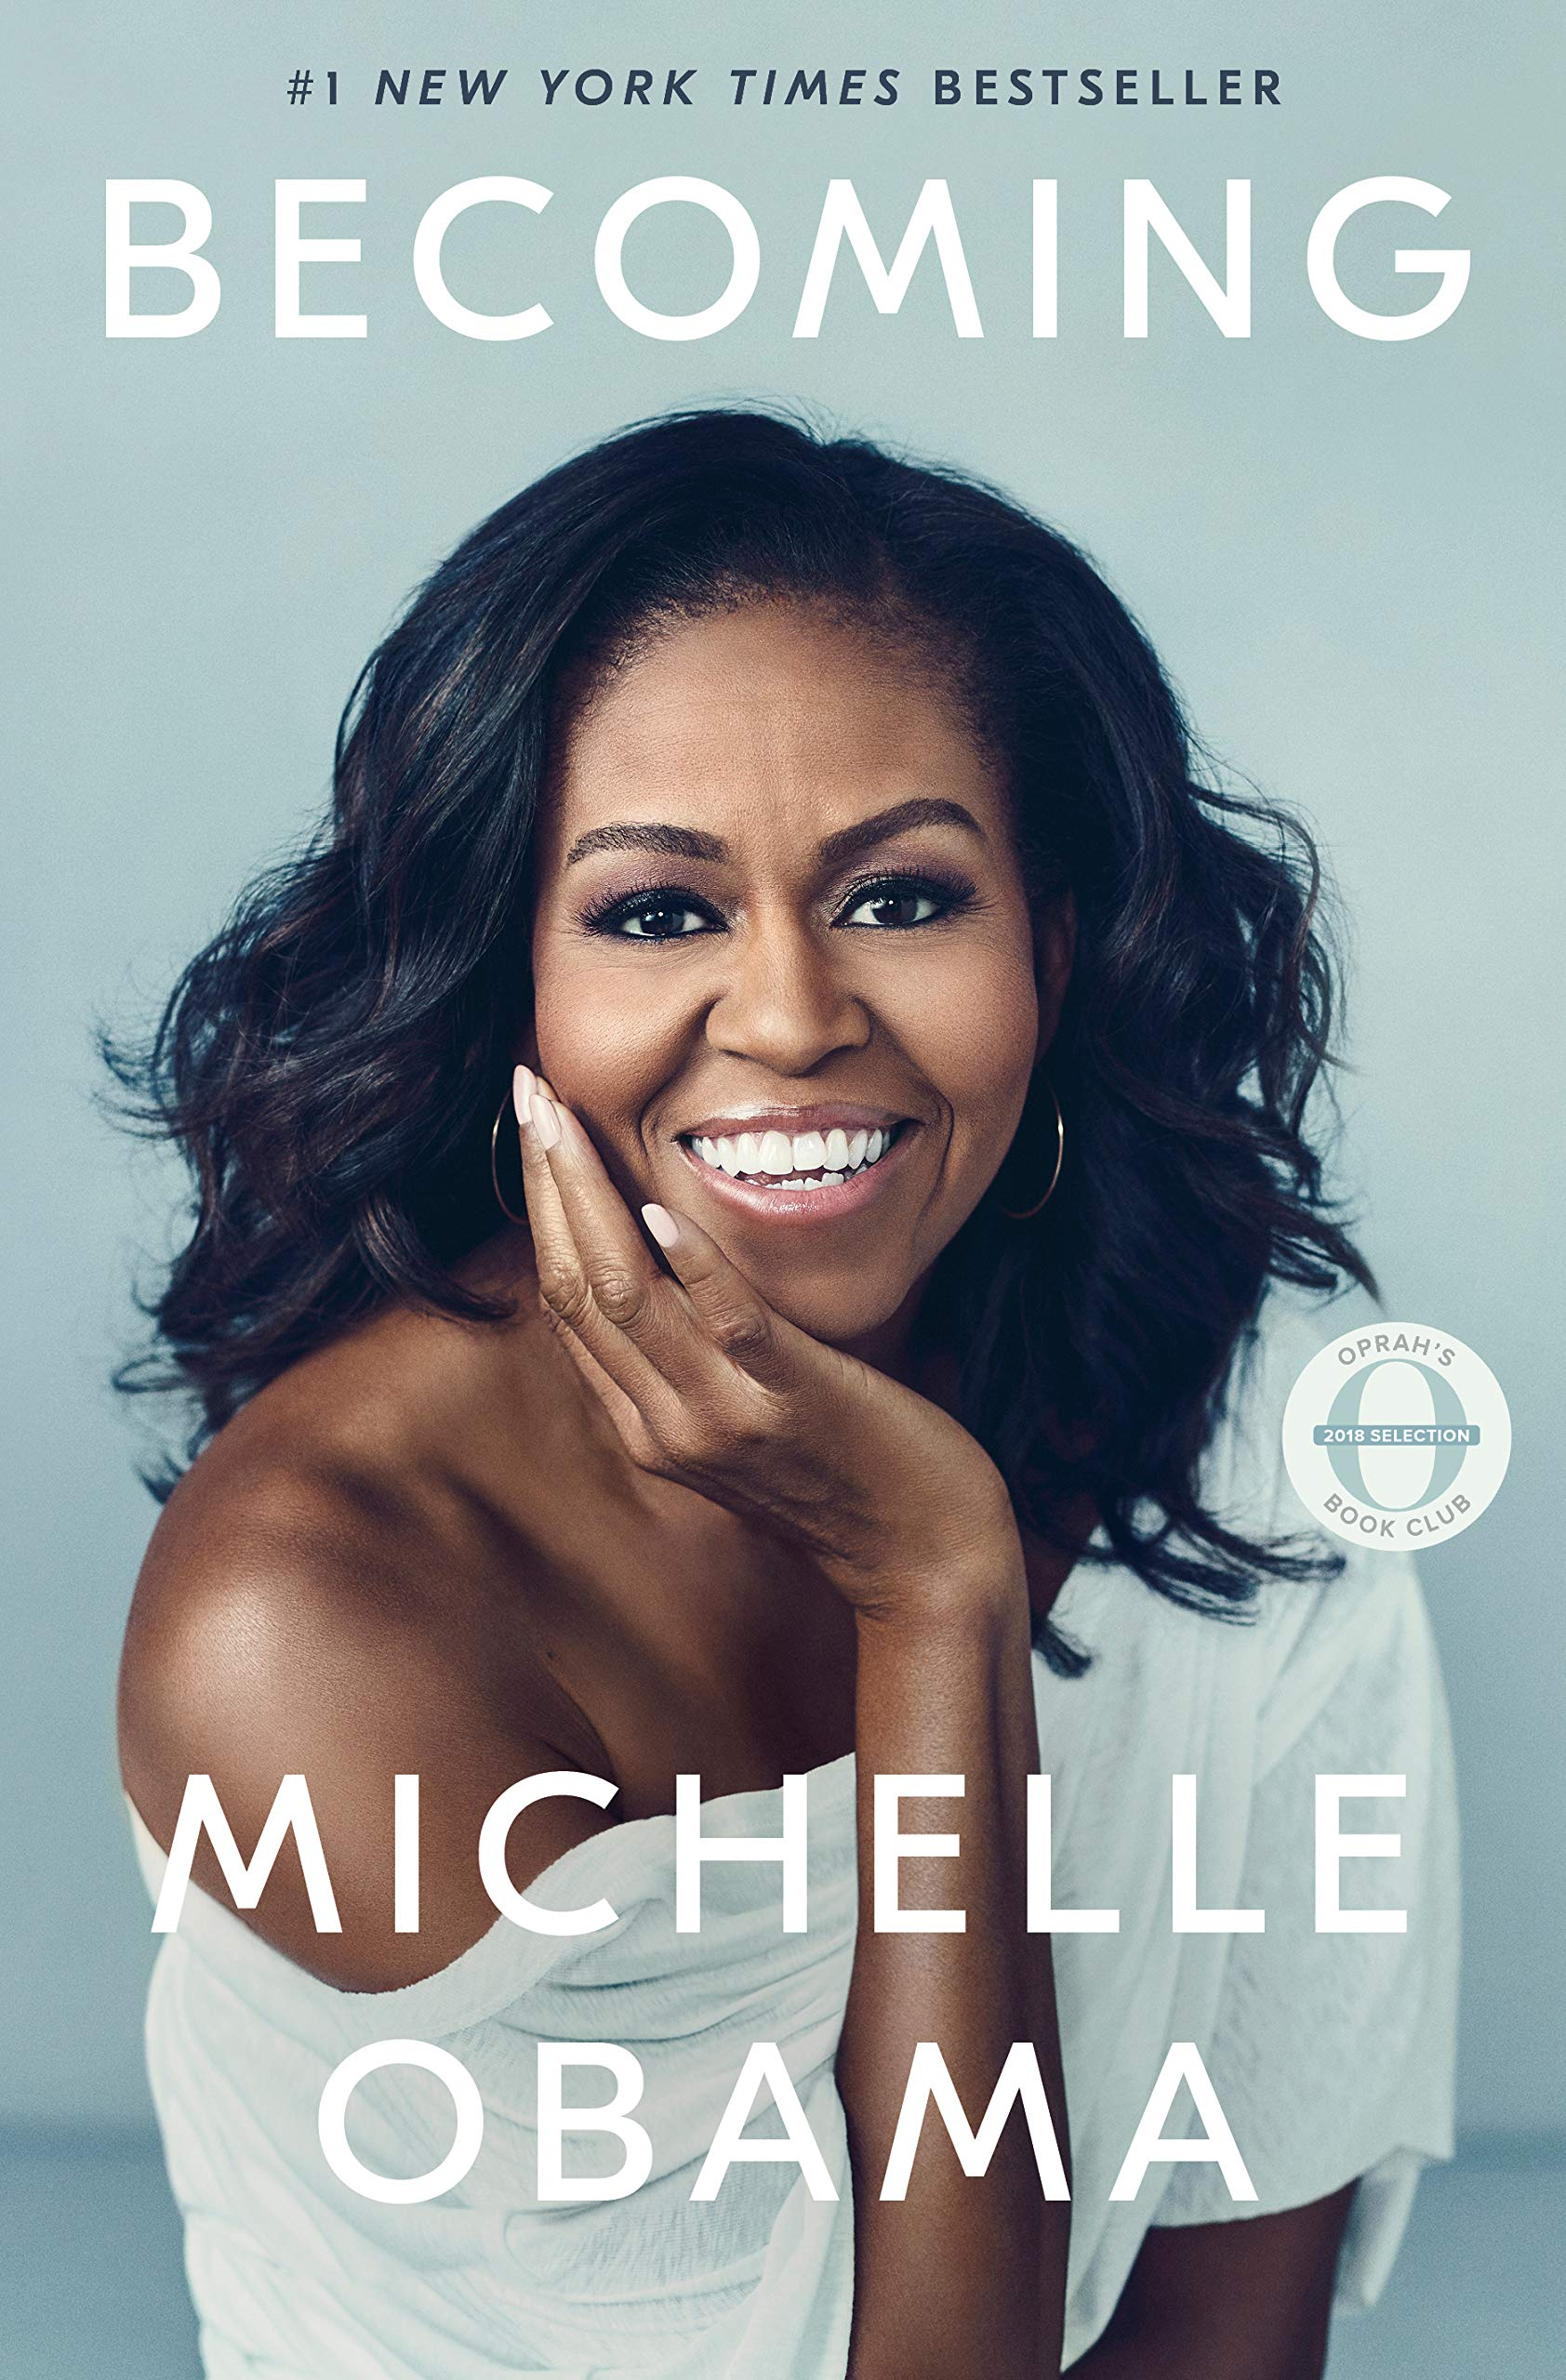 """Becoming"" - Michelle Obama"